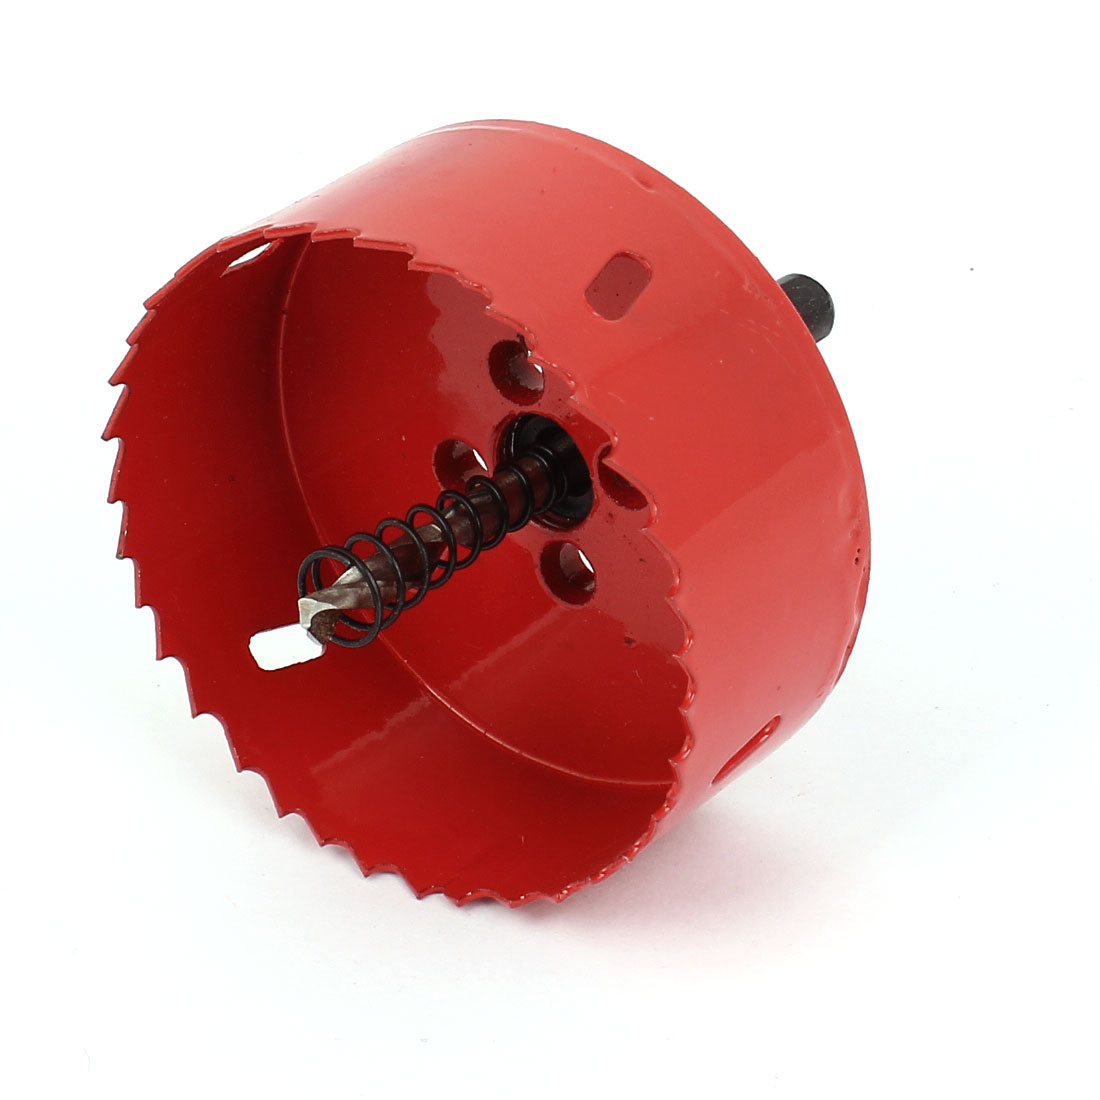 Подробнее о UXCELL 85Mm Cutting Dia Toothed Bi Metal Hole Saw Cutter Drill Bit Red For Wood Iron uxcell 42mm cutting dia 10mm shank twist drill bit bimetal hole saw cutter tool red